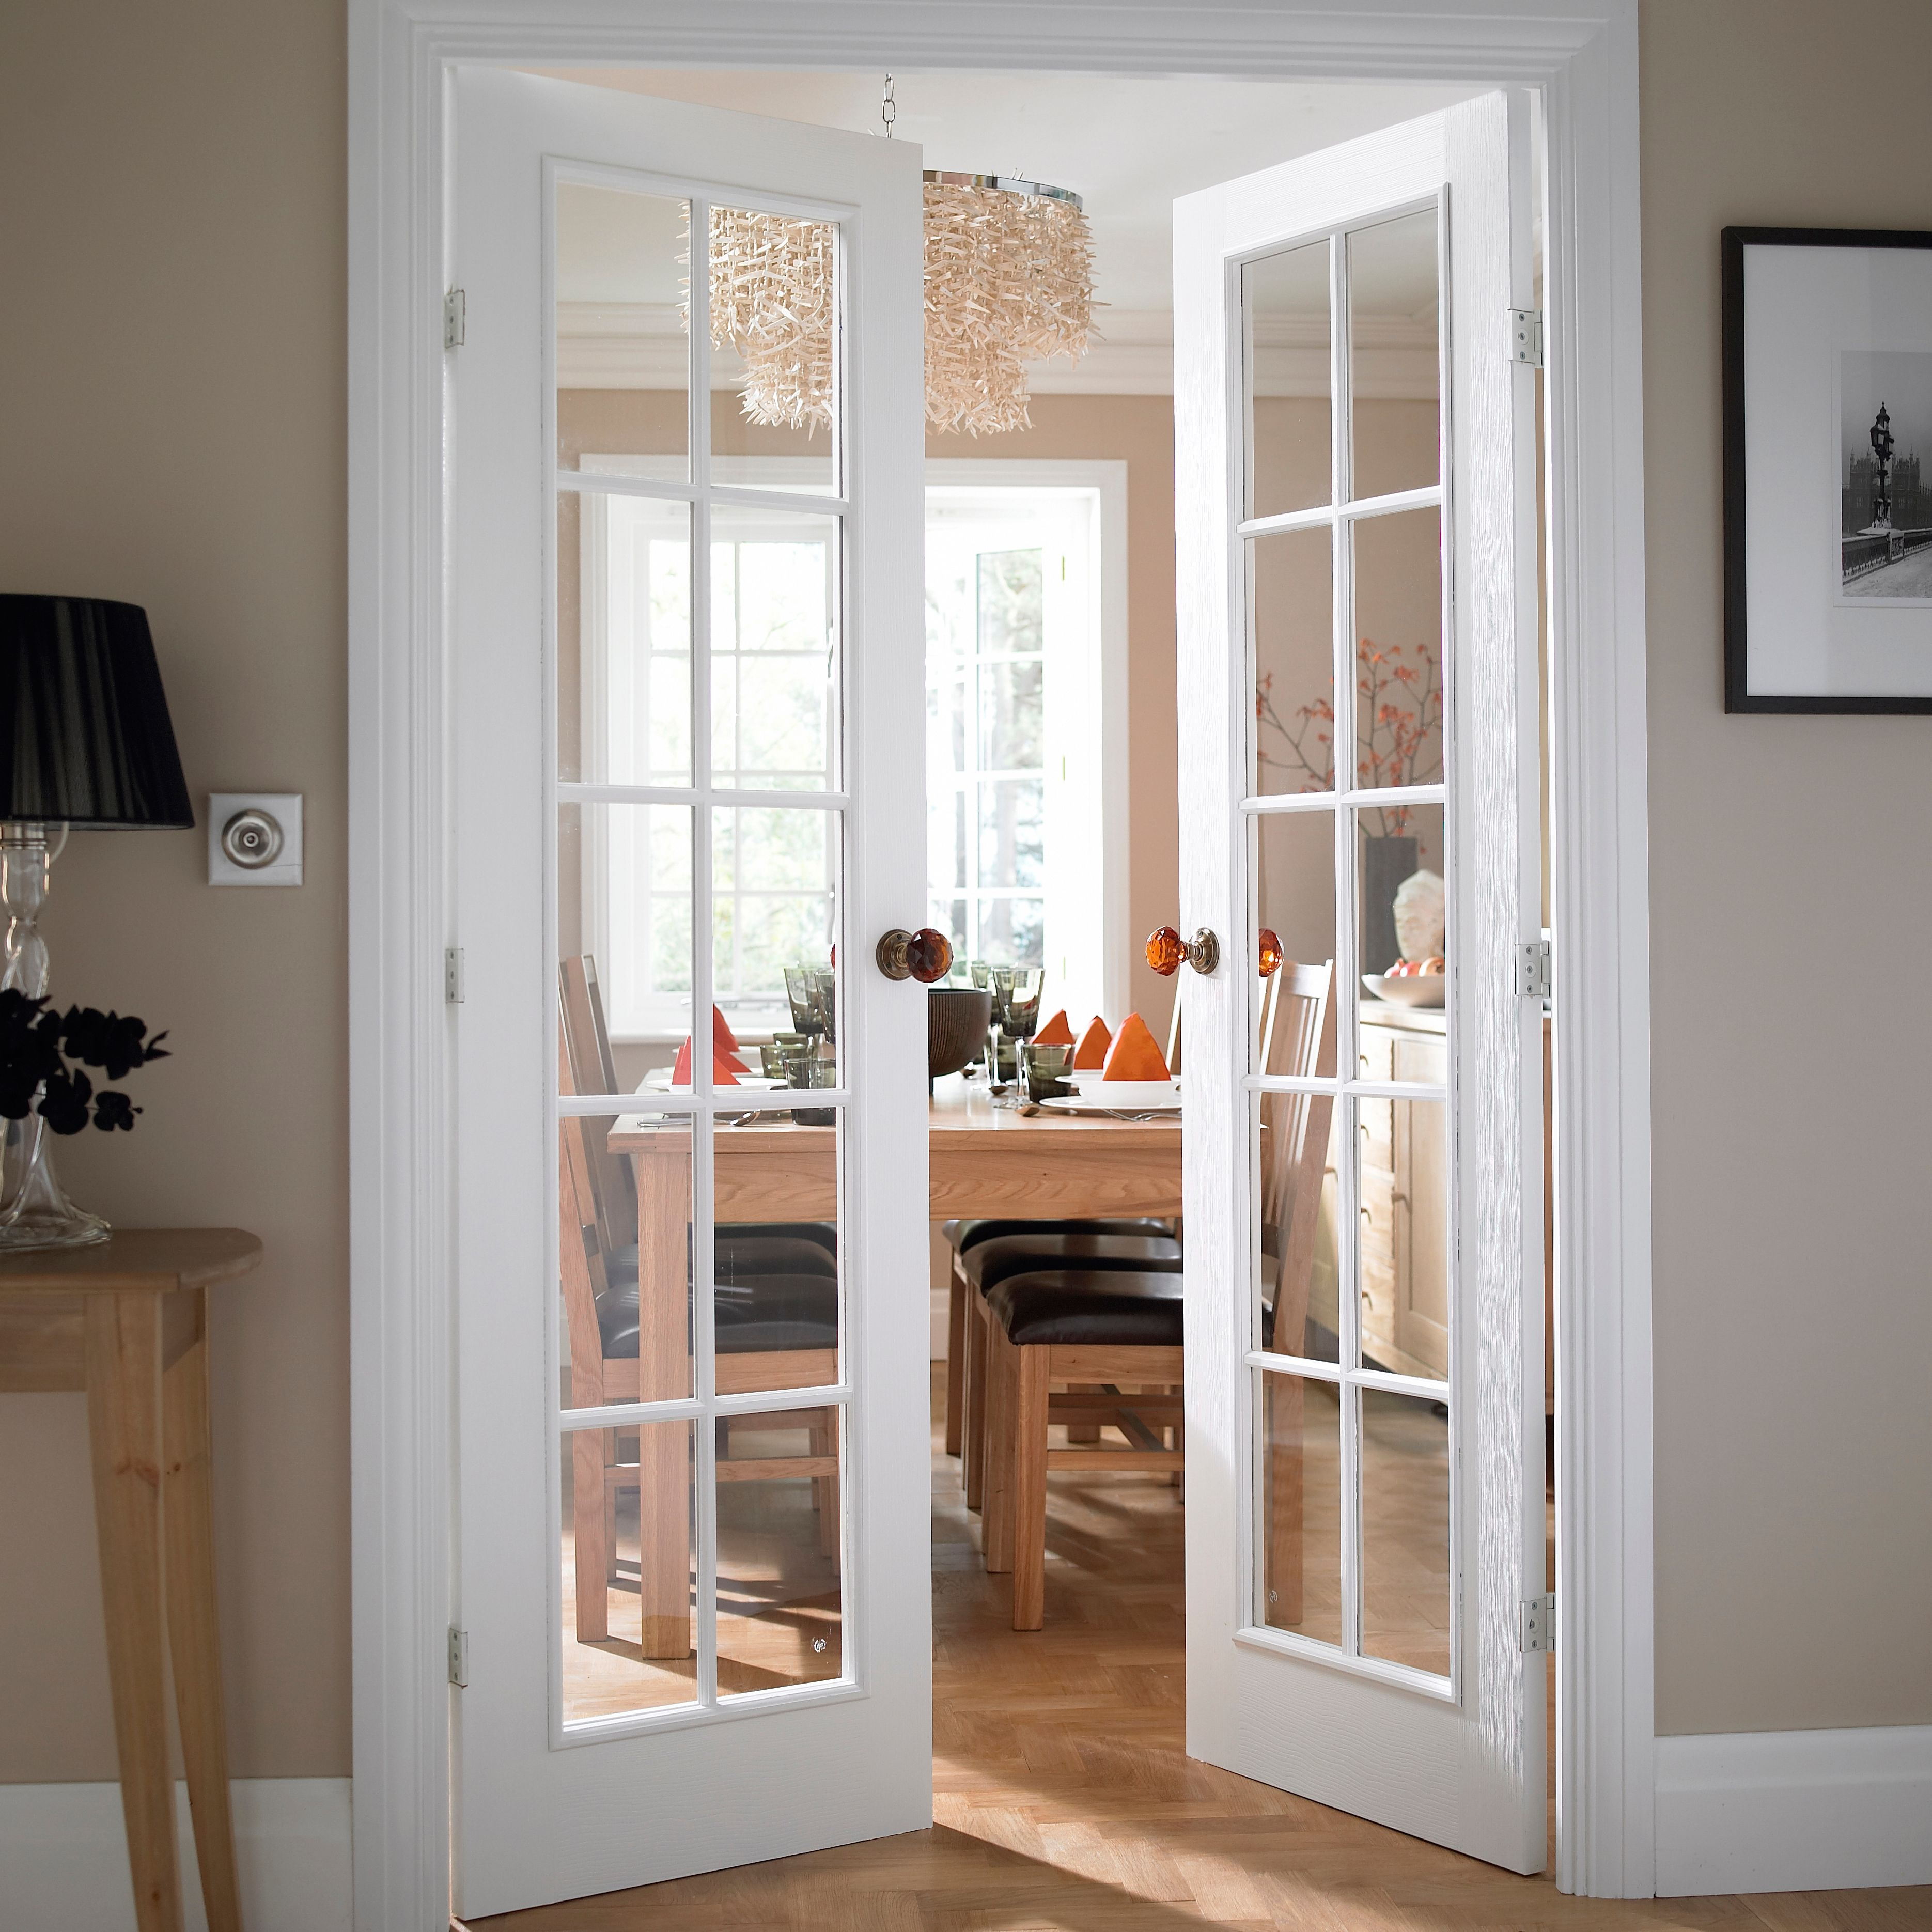 The incredible french interior doors b q photos interior exterior ideas for Interior double glass french doors